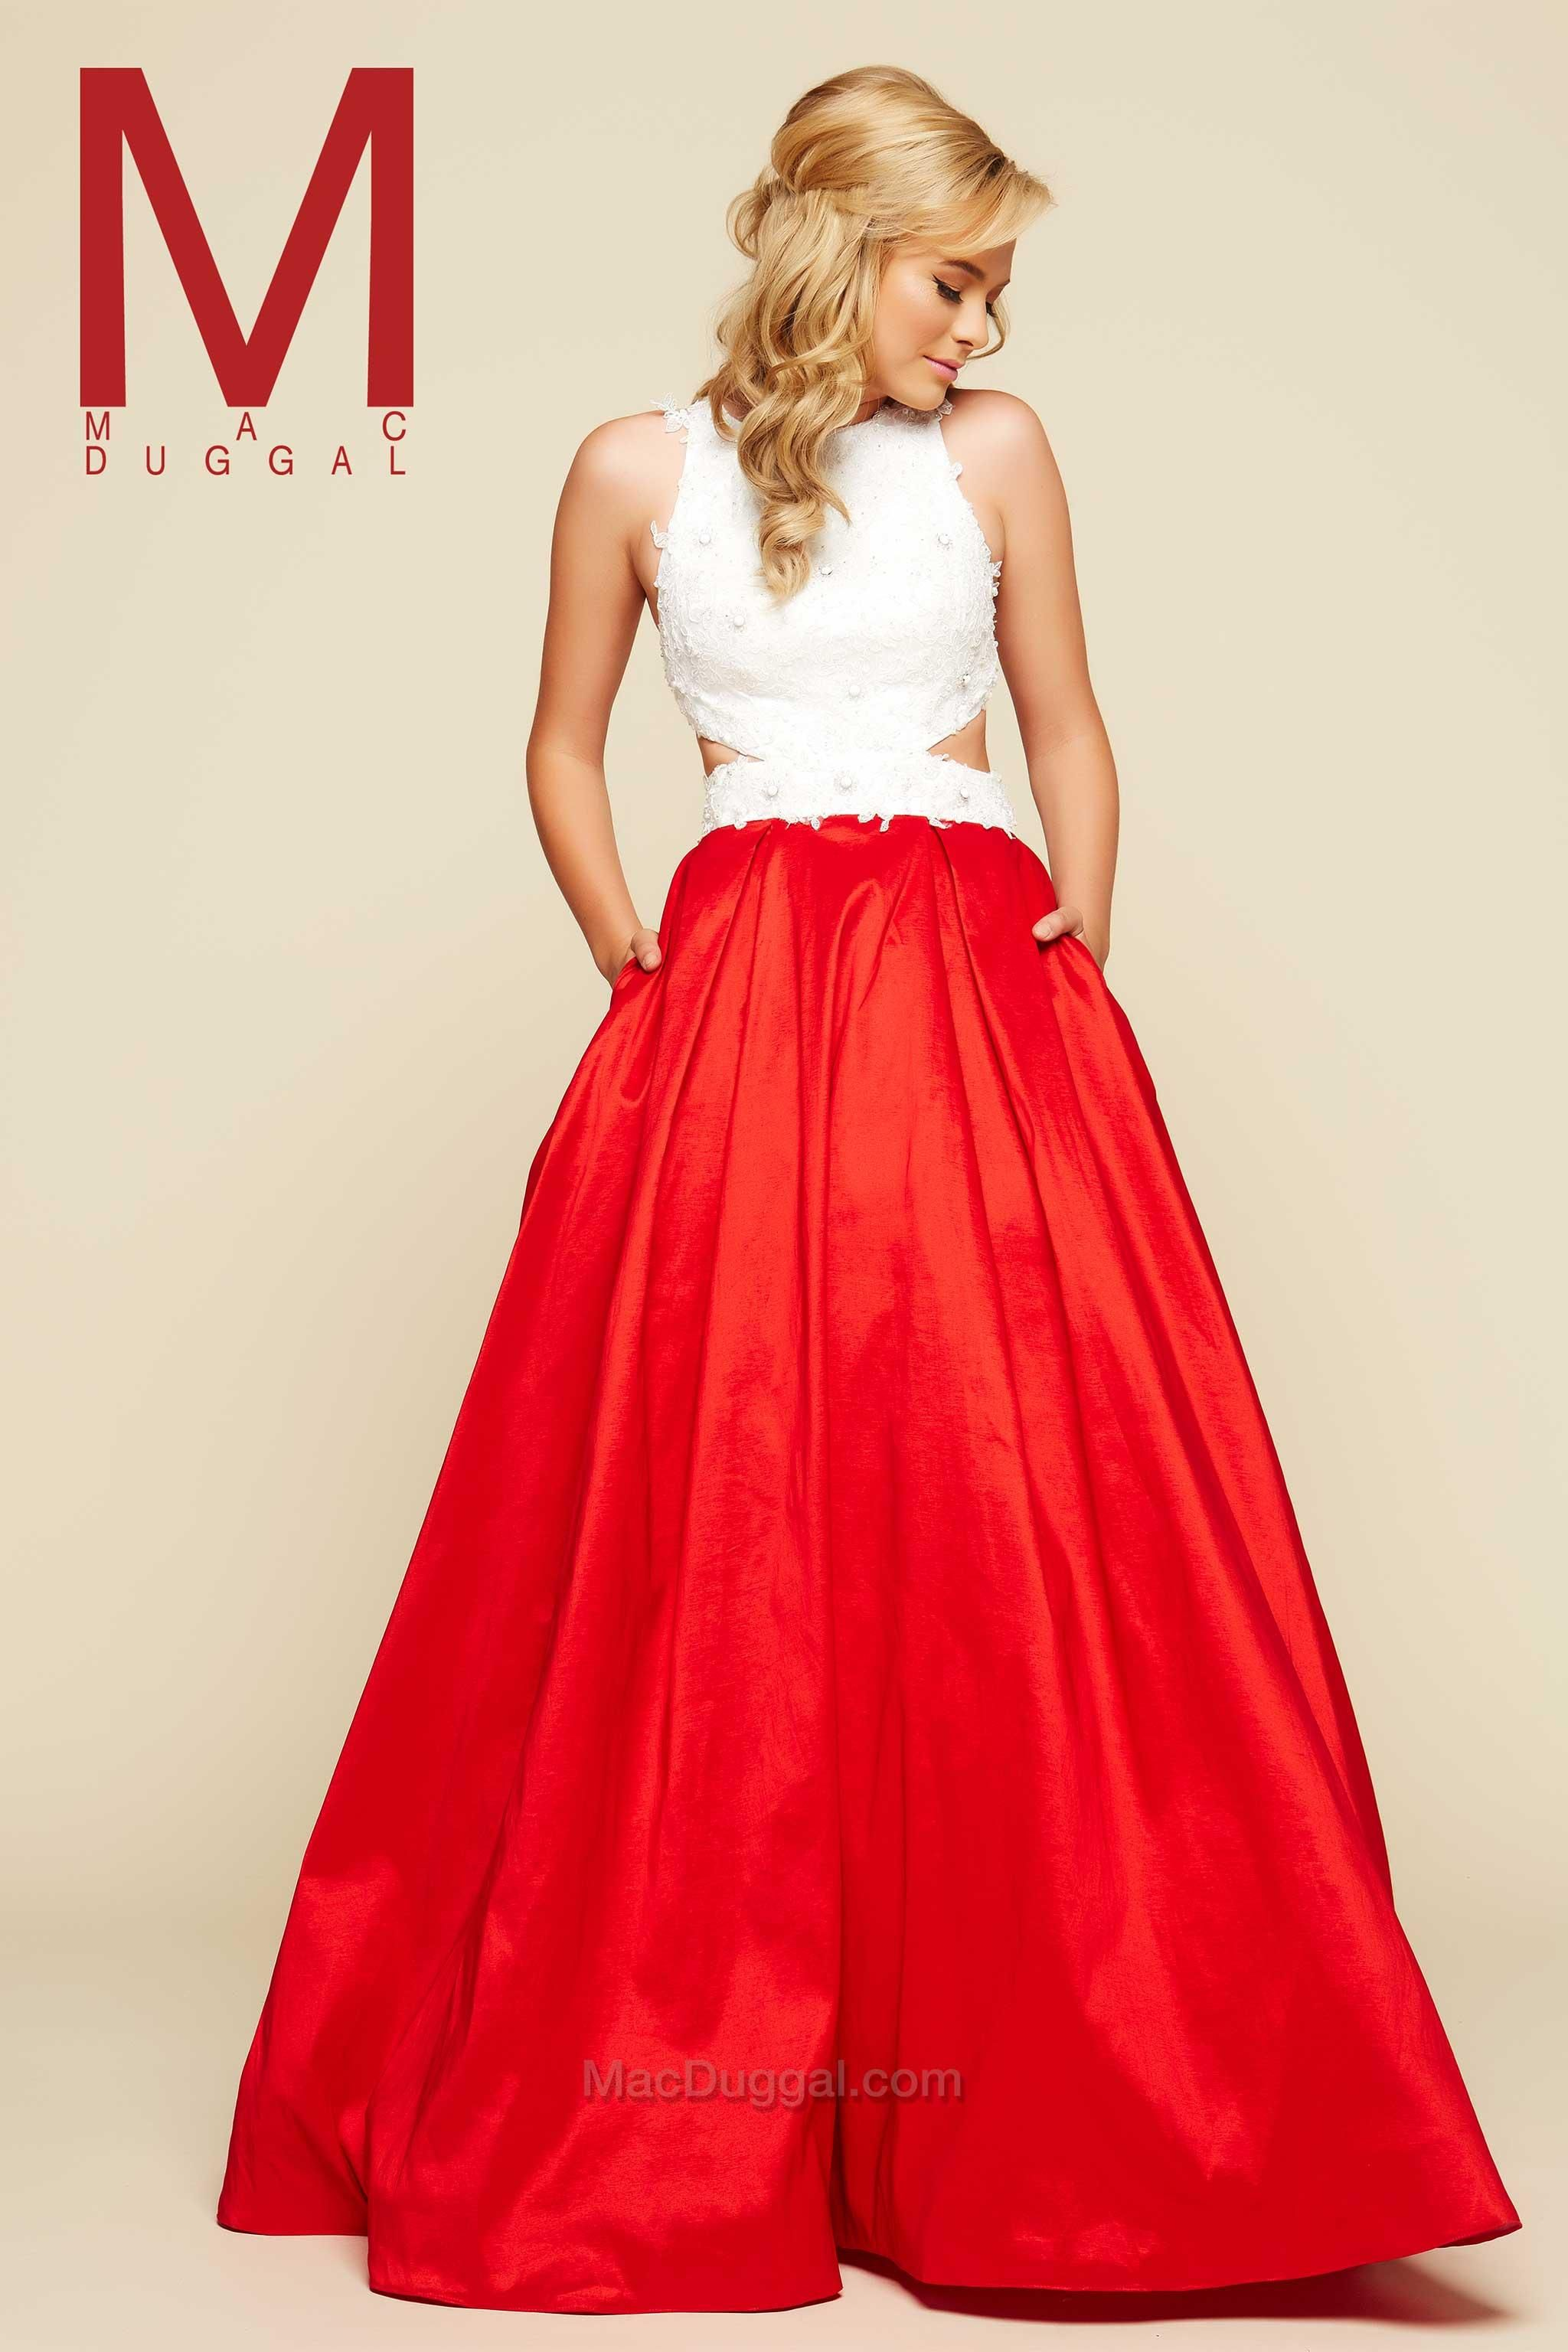 Style h womenus fashion pinterest ball gowns prom and macs